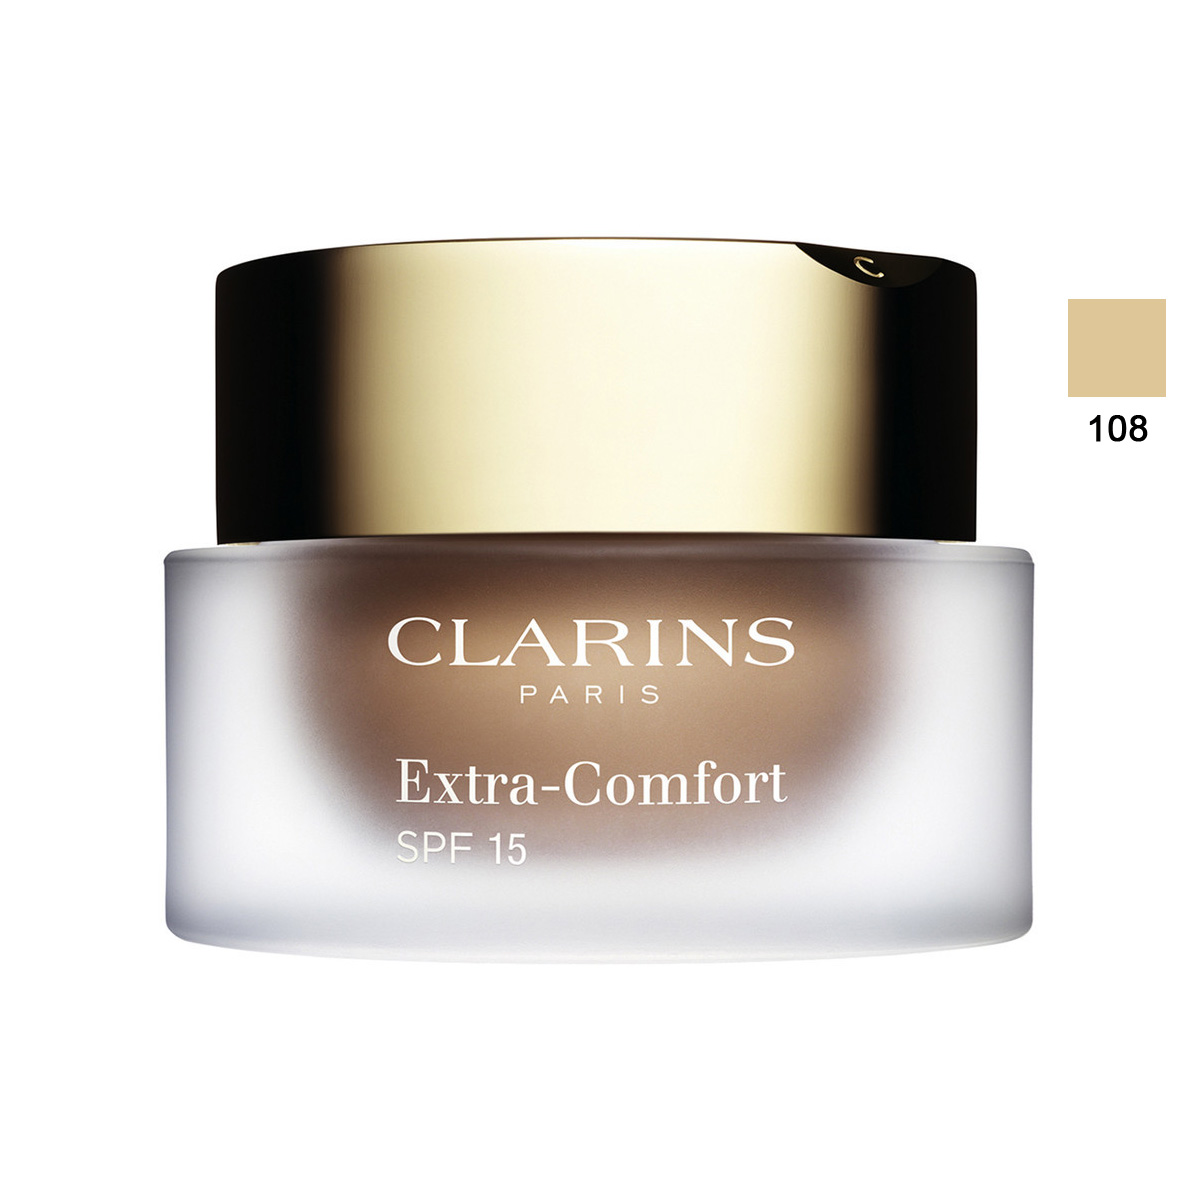 Clarins  Extracomfort foundation spf 15  fondotinta 108 sand